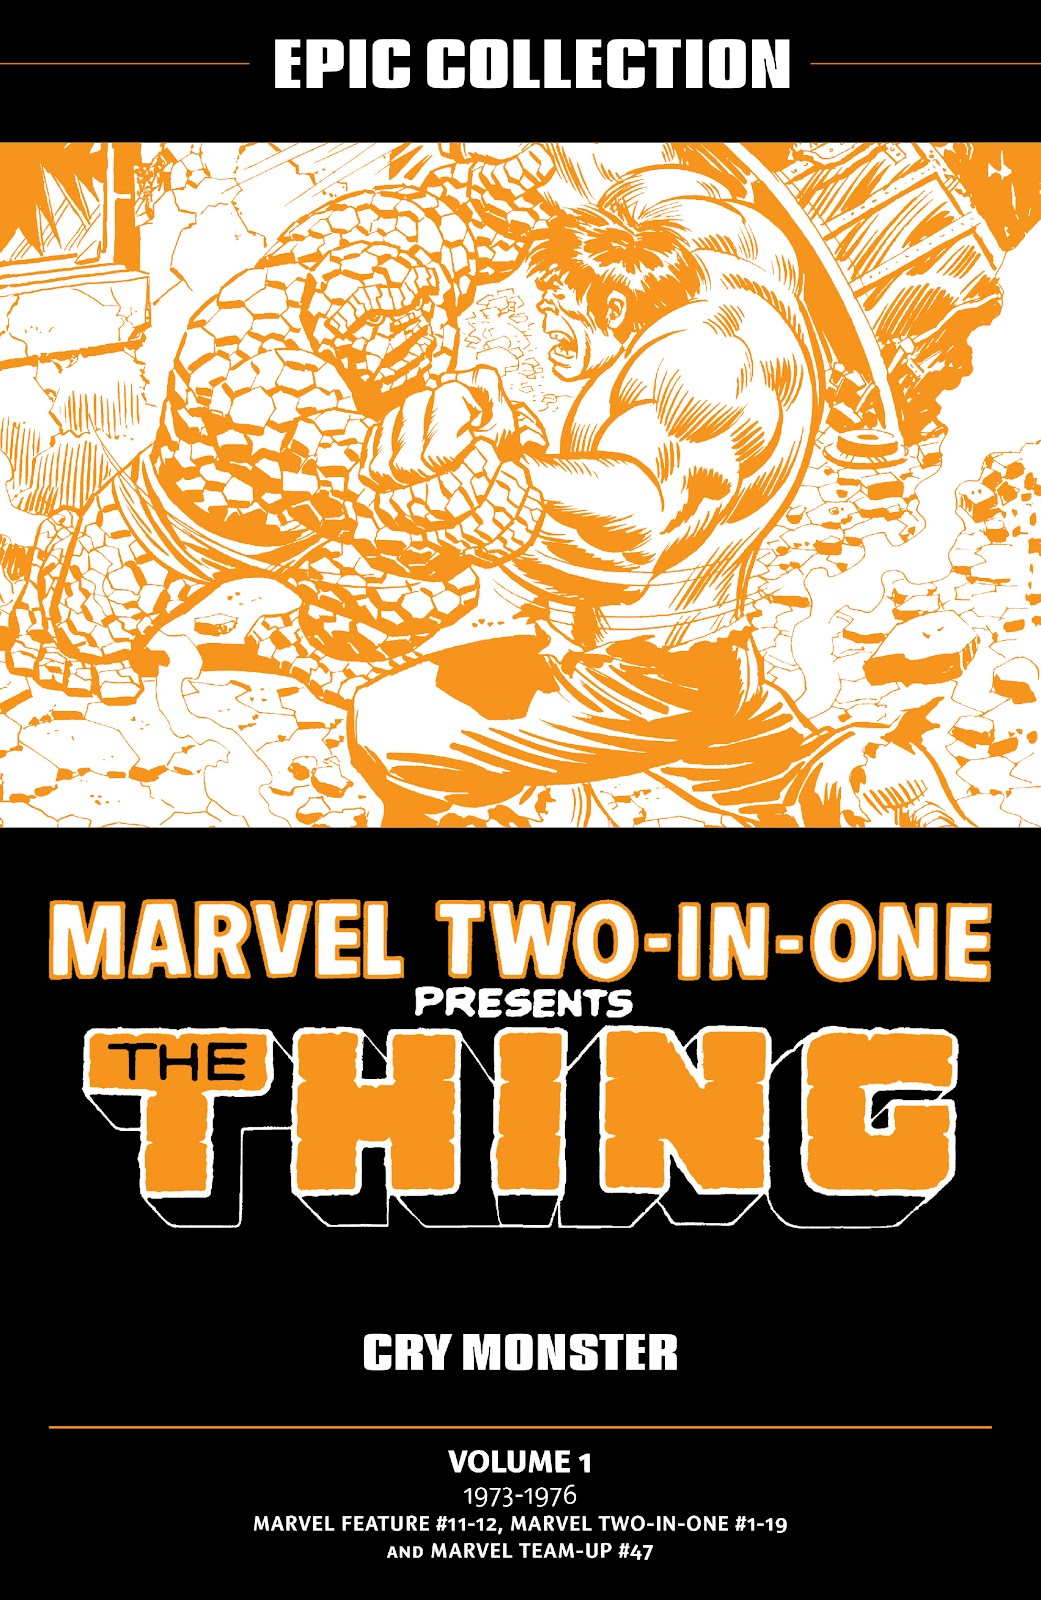 Read online Marvel Two-In-One Epic Collection: Cry Monster comic -  Issue # TPB (Part 1) - 2